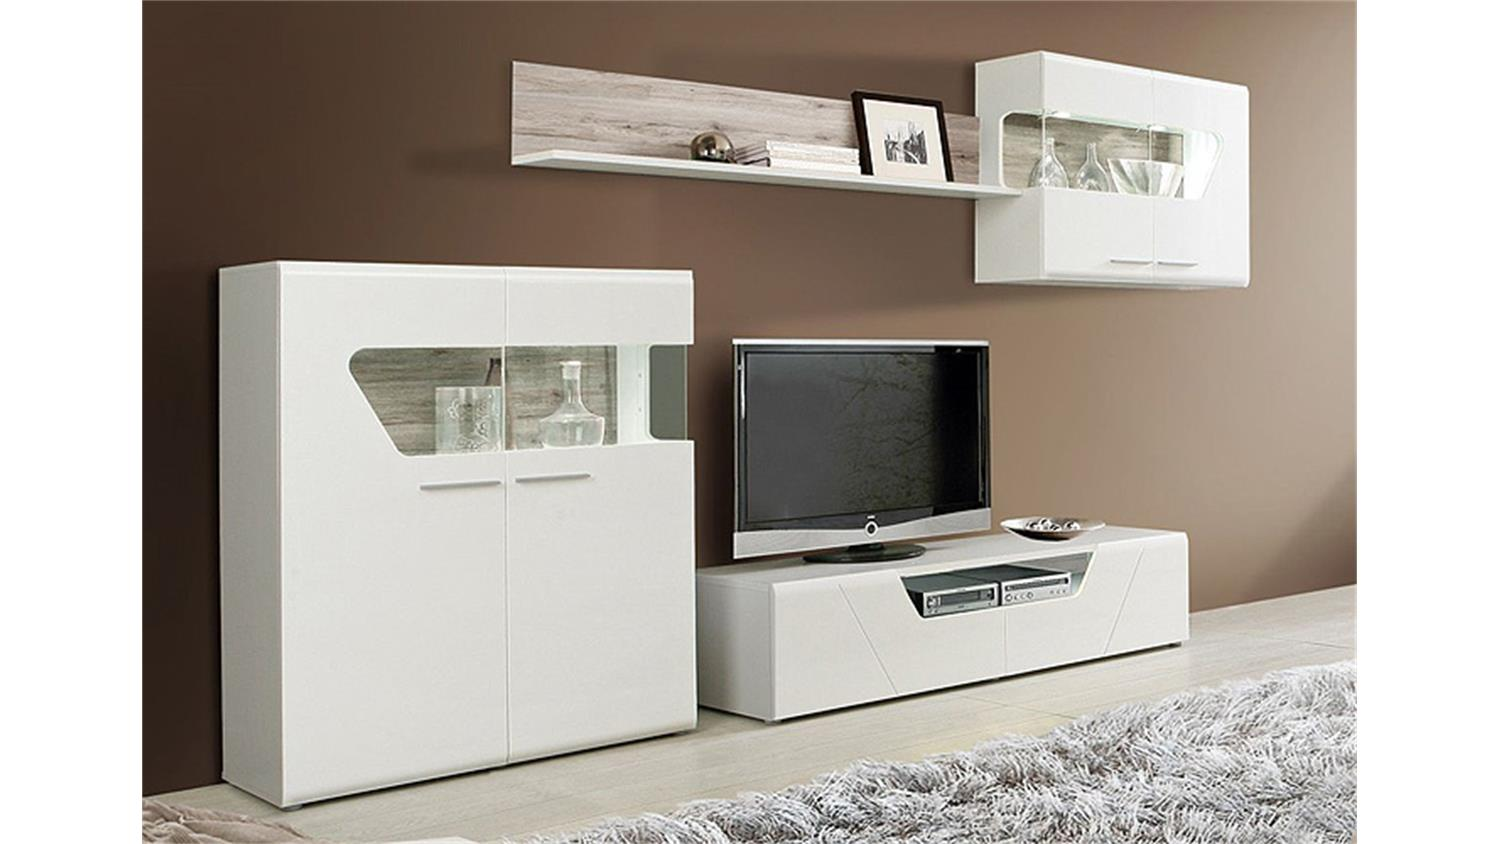 wohnwand kando mdf wei hochglanz und sandeiche. Black Bedroom Furniture Sets. Home Design Ideas